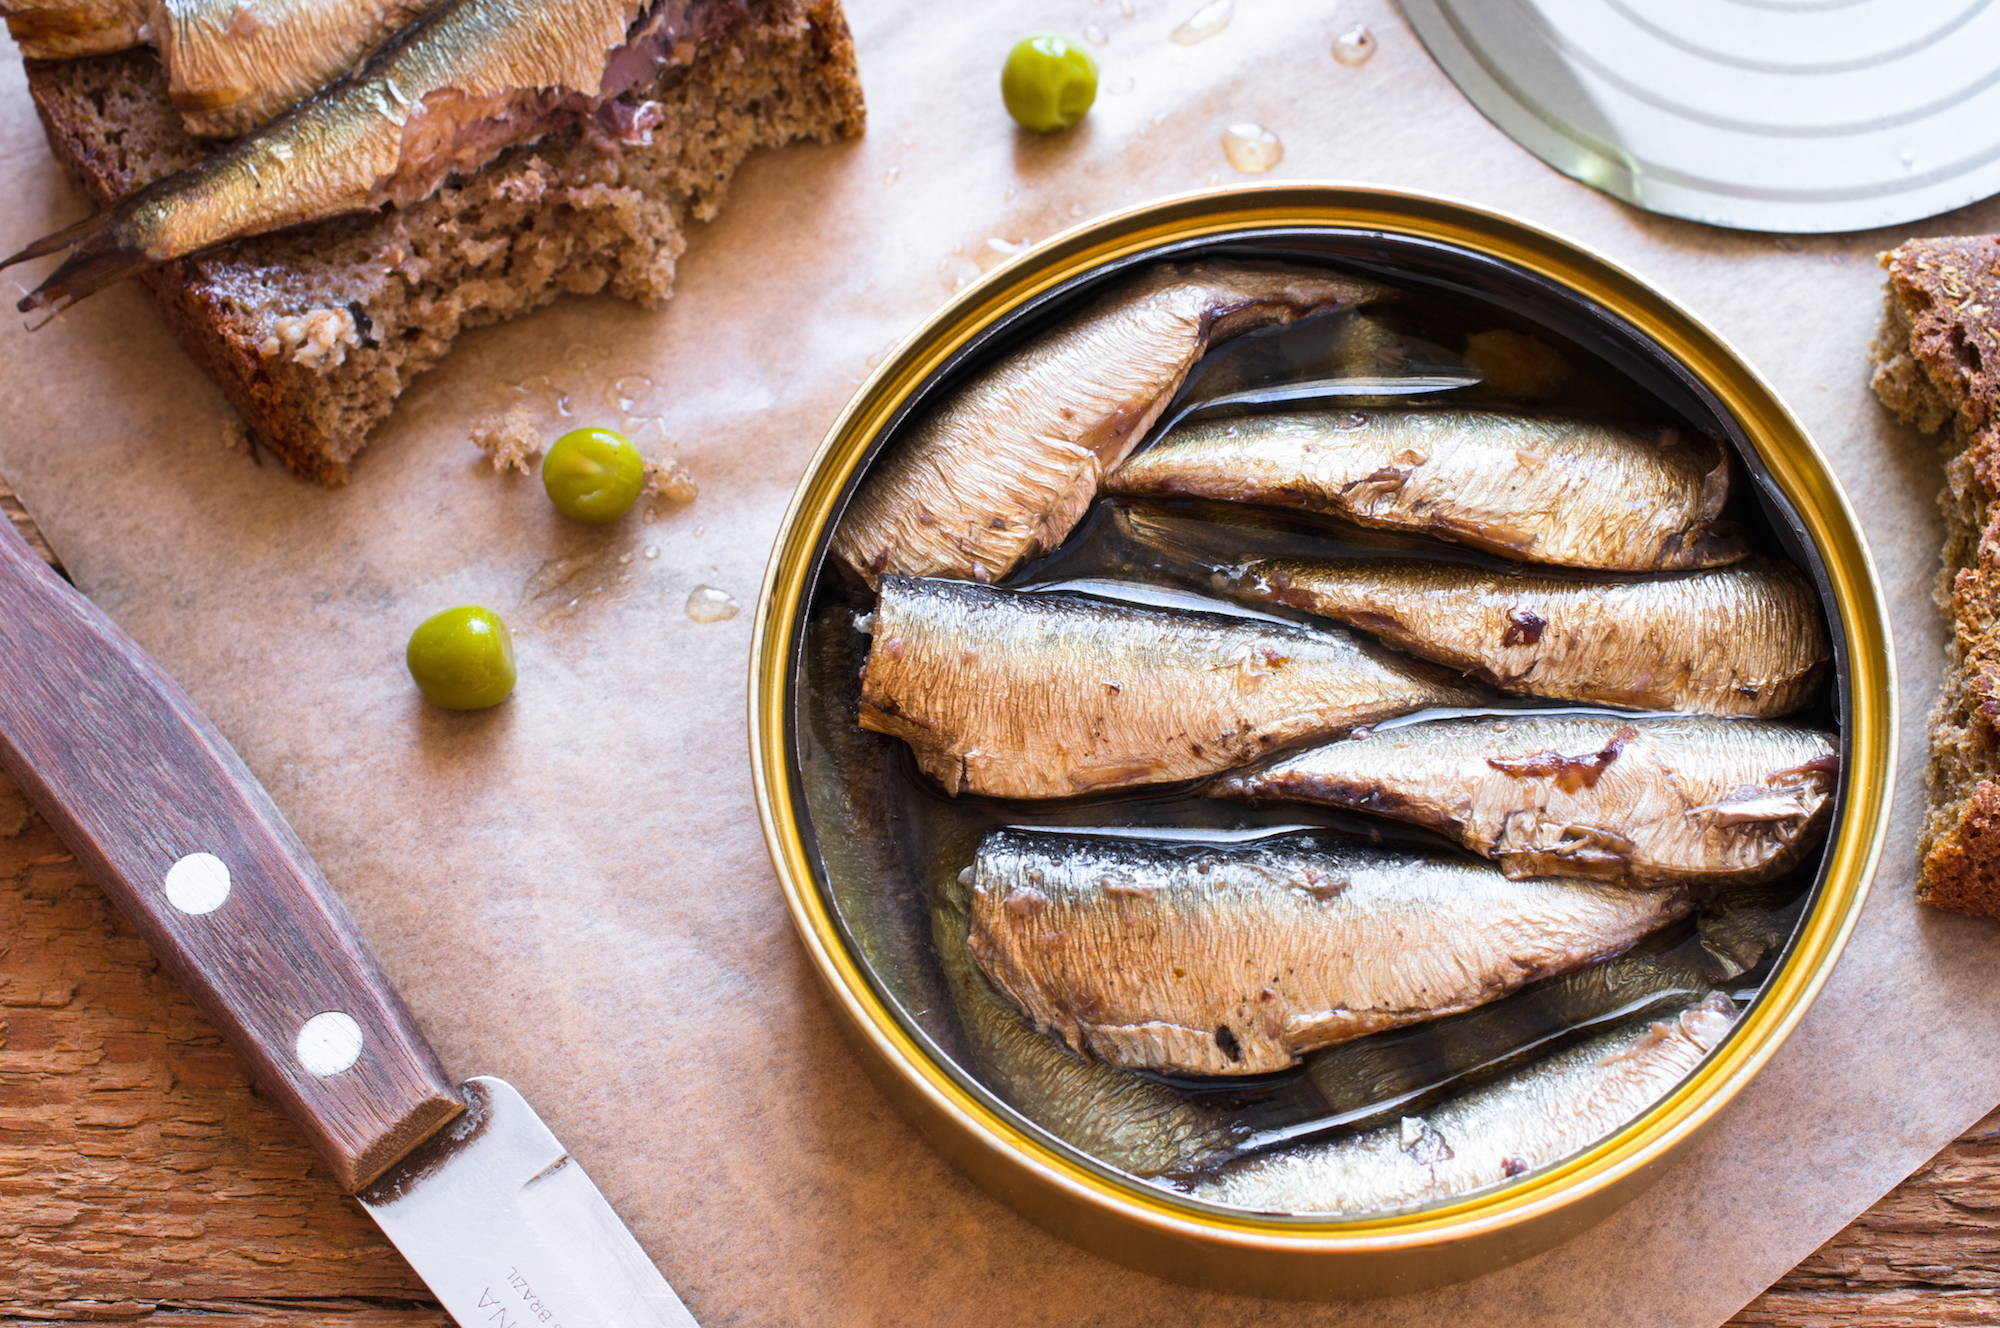 Eating sardines contributes towards a healthy diet in menopause